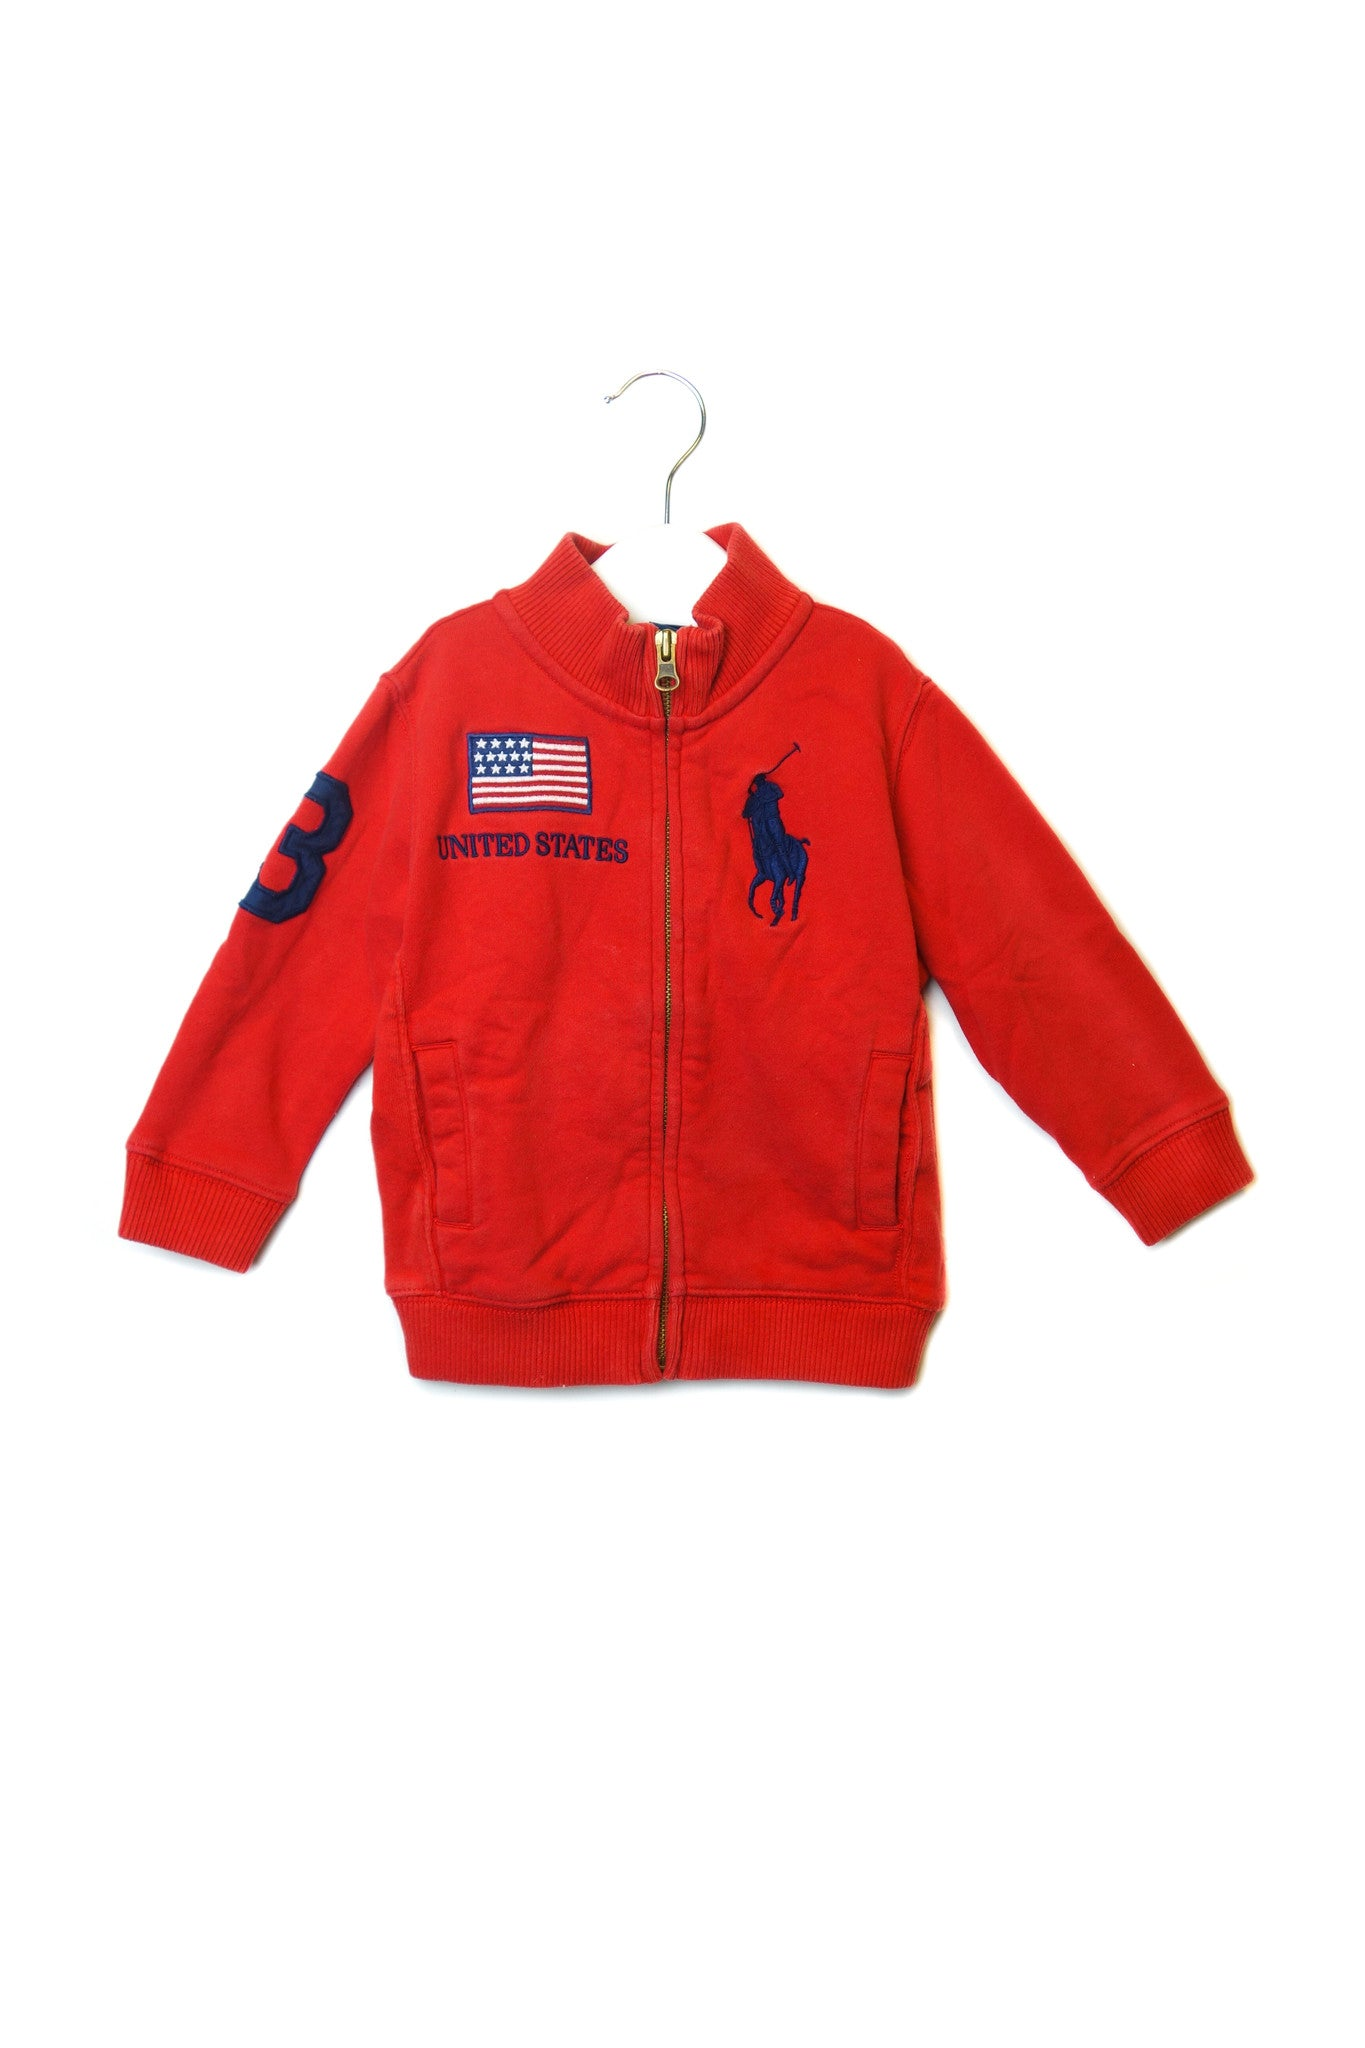 10001774 Polo Ralph Lauren Kids~Sweatshirt 2T at Retykle